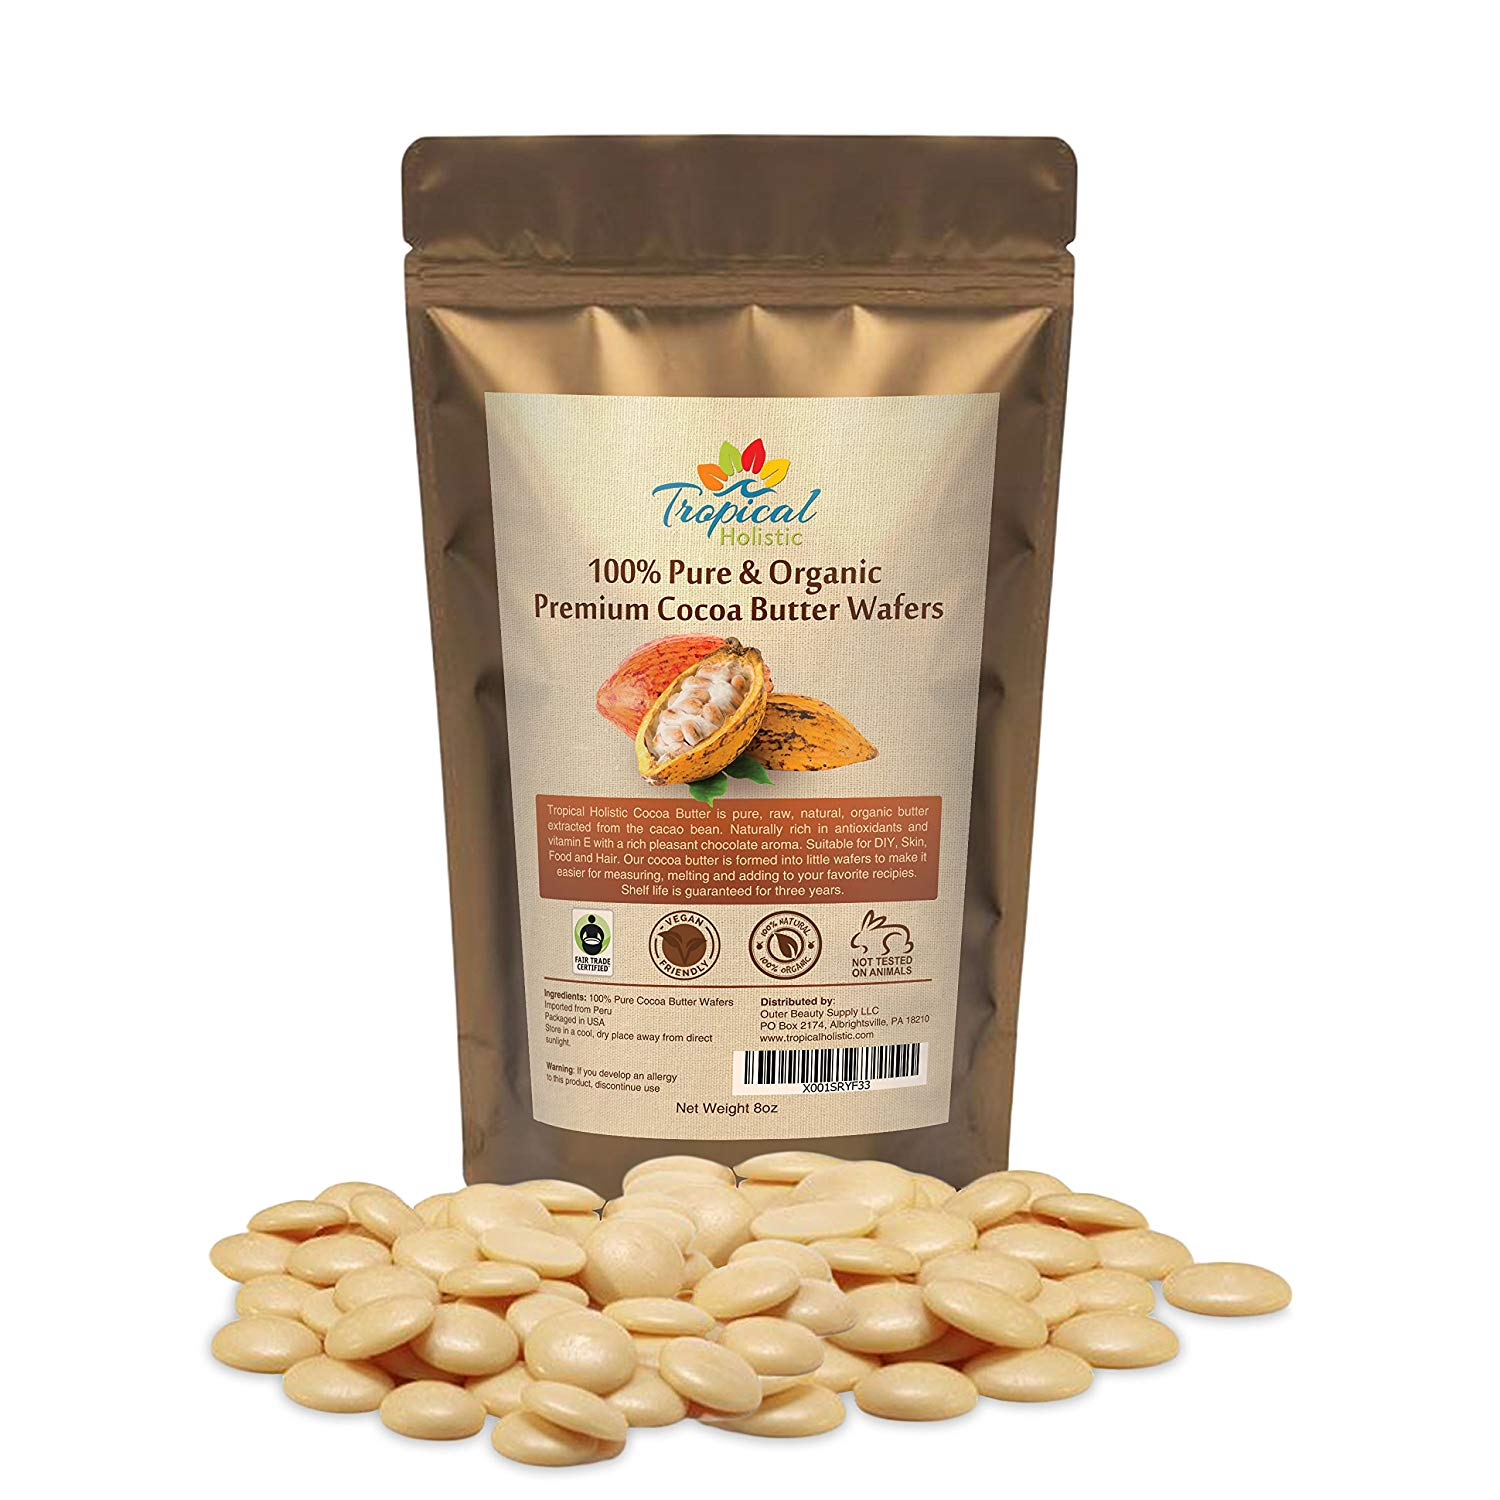 Raw Cocoa Butter Wafers (8 ounce) - 100% Natural Unrefined, Non-Deodorized, Organic Fair Trade Cacao Beans From Peru - Best for Food, Hair, Skin and DIY Such as chocolate bars